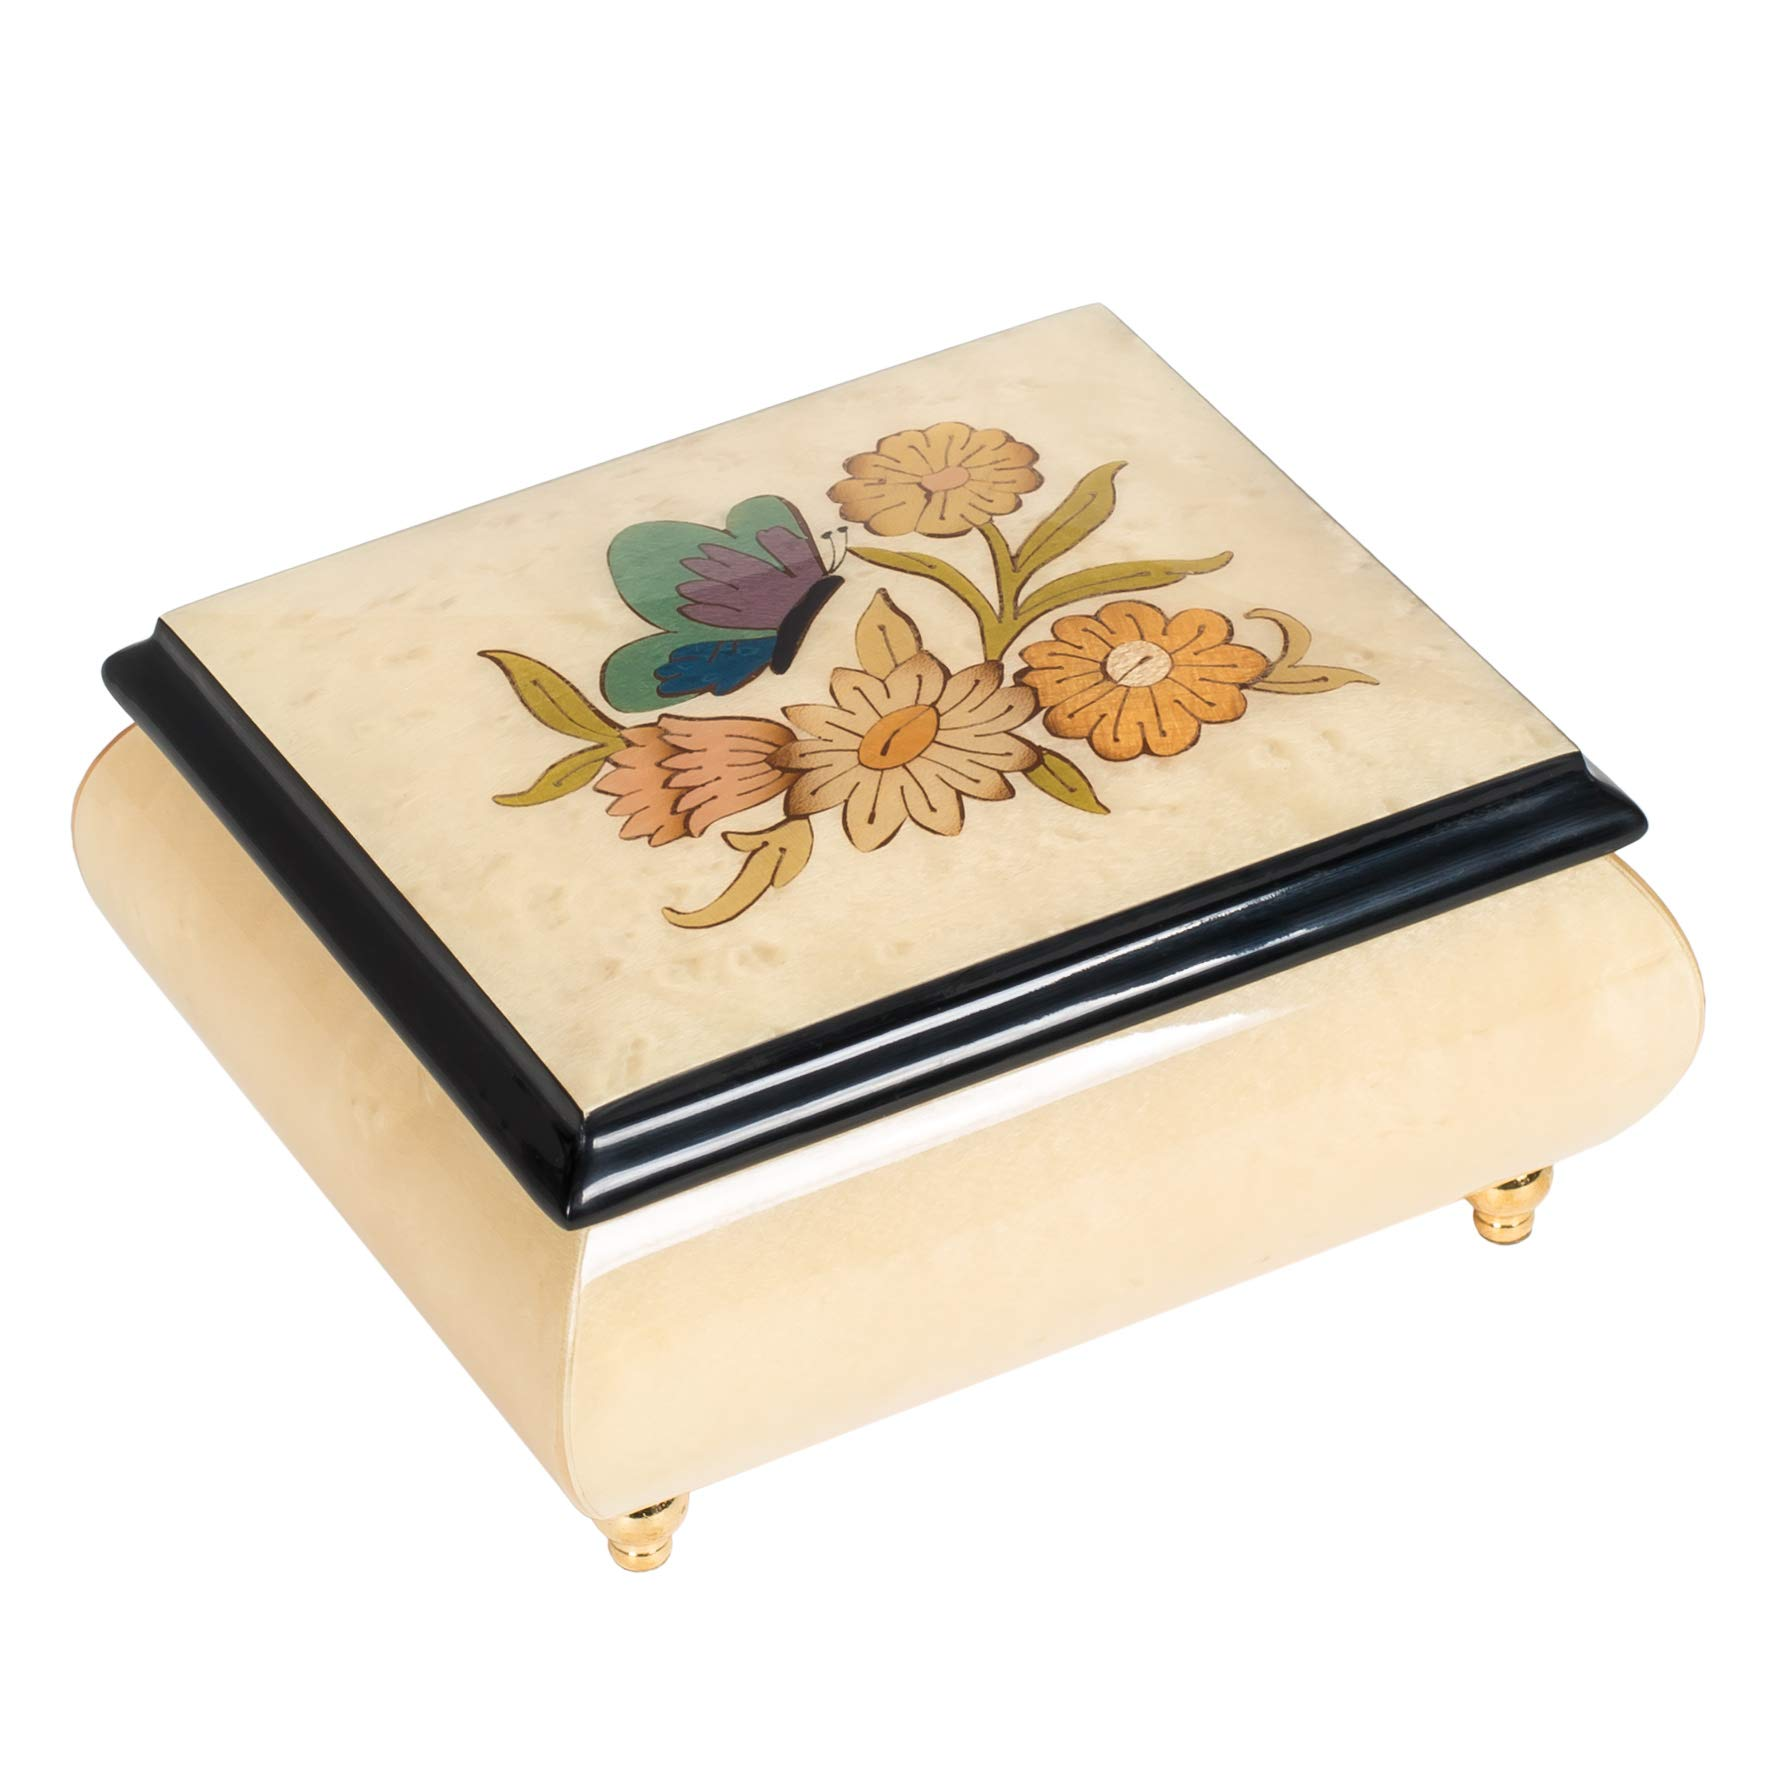 CDM product Inlaid Butterfly Italian Hand Crafted Wood Musical Jewelry Box (White) big image